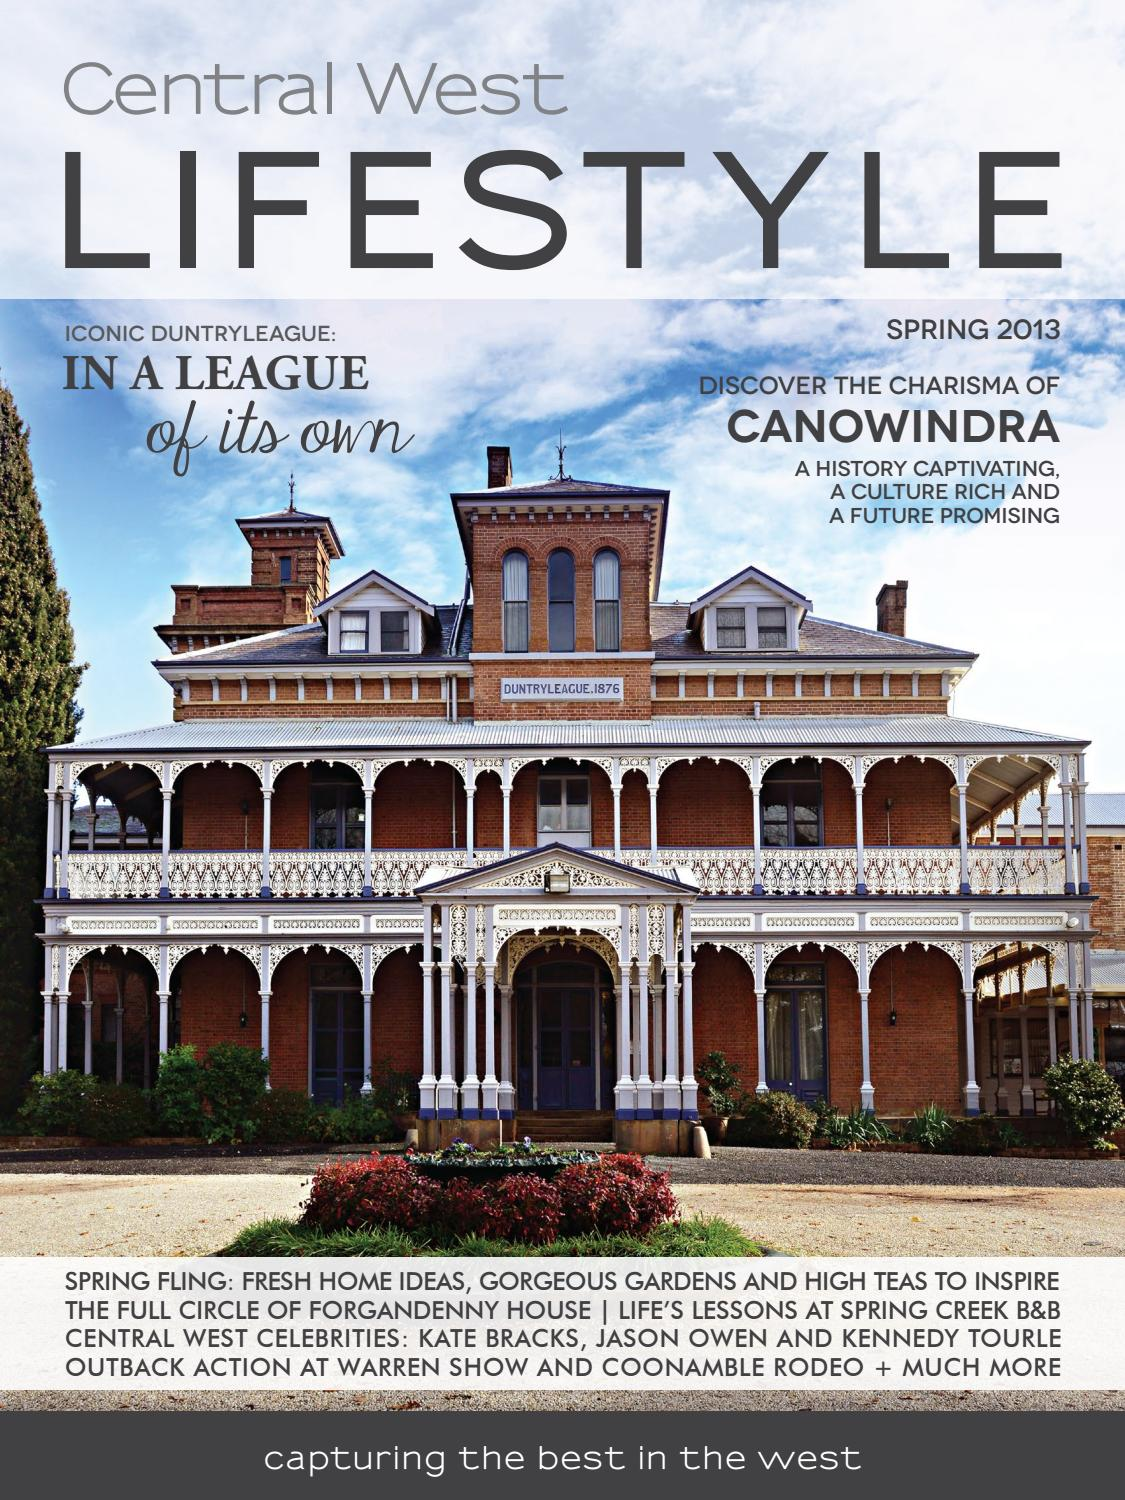 2 Central West Lifestyle Spring 2013 By Central West Lifestyle